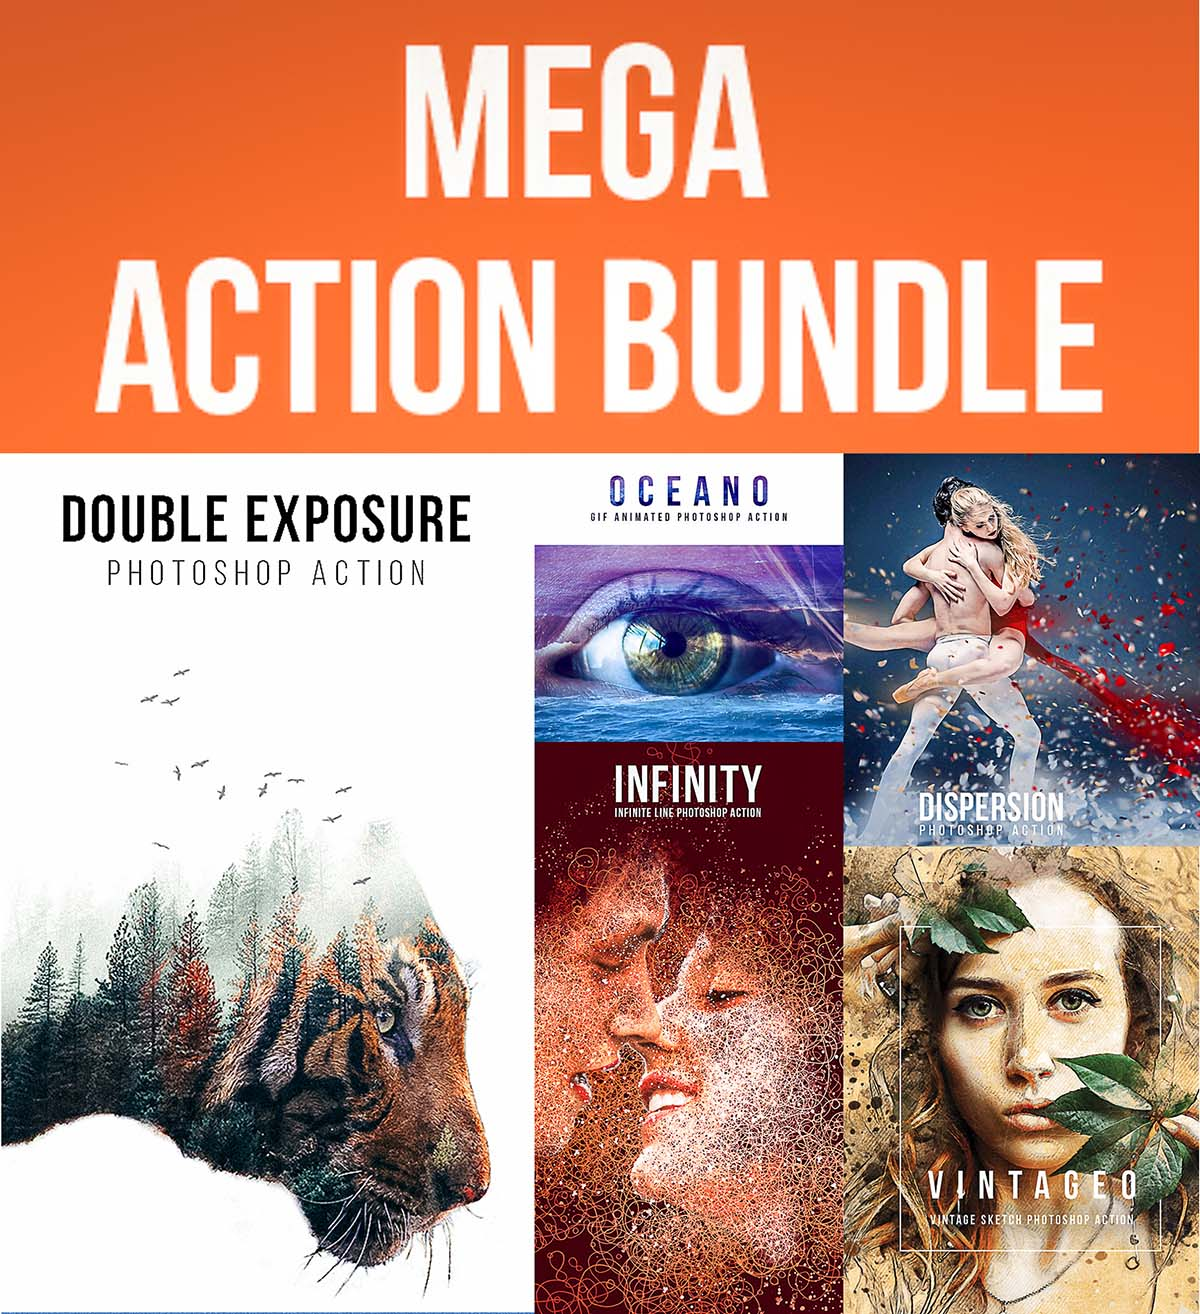 Mega action collection